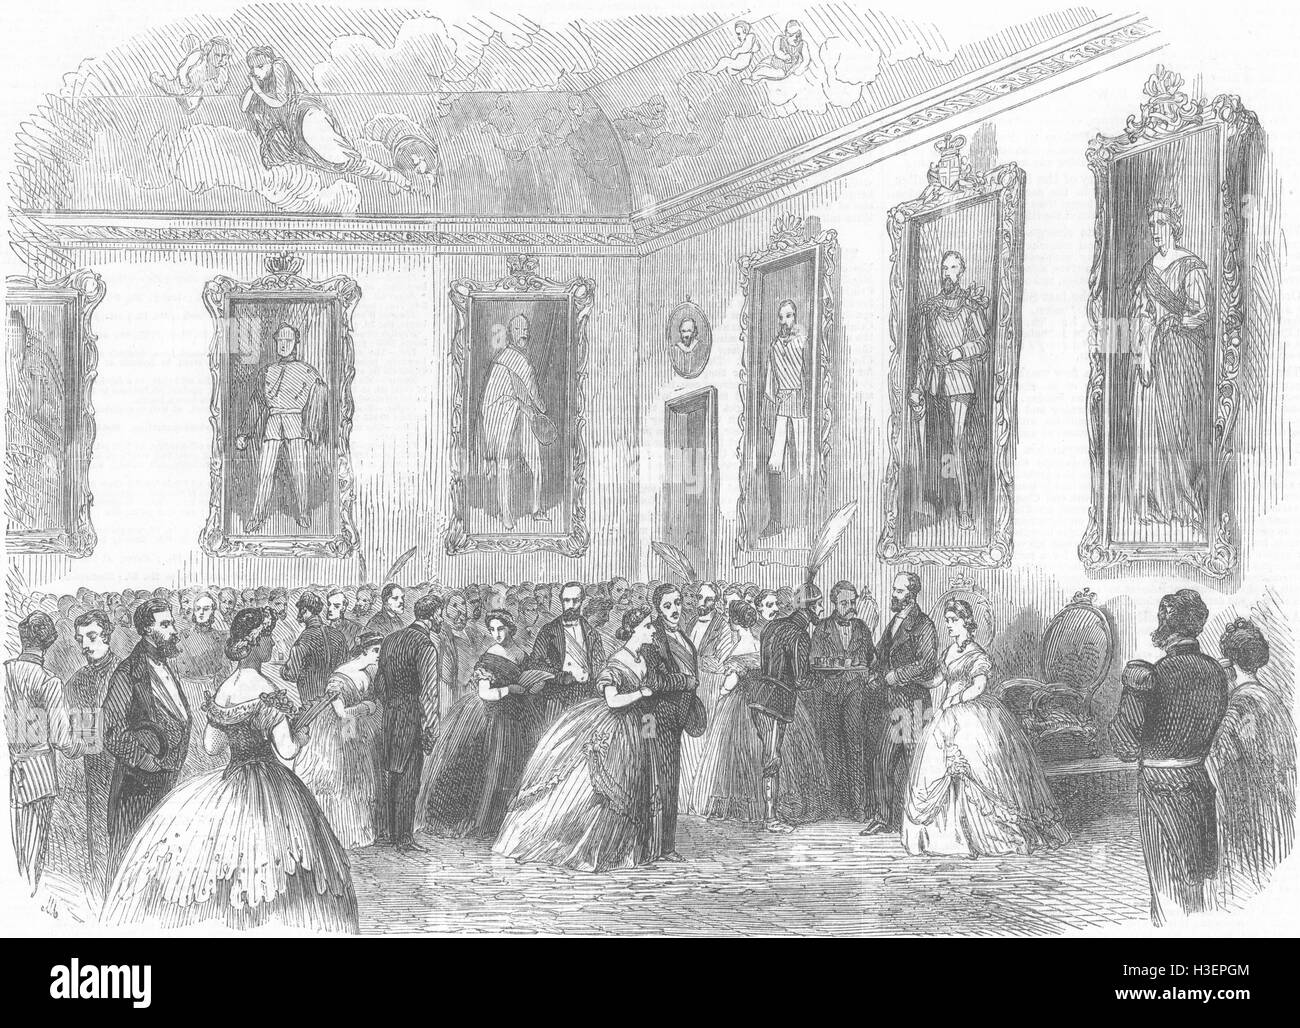 SWEDEN Ball given by Queen Dowager, Drottningholm 1864. Illustrated London News - Stock Image